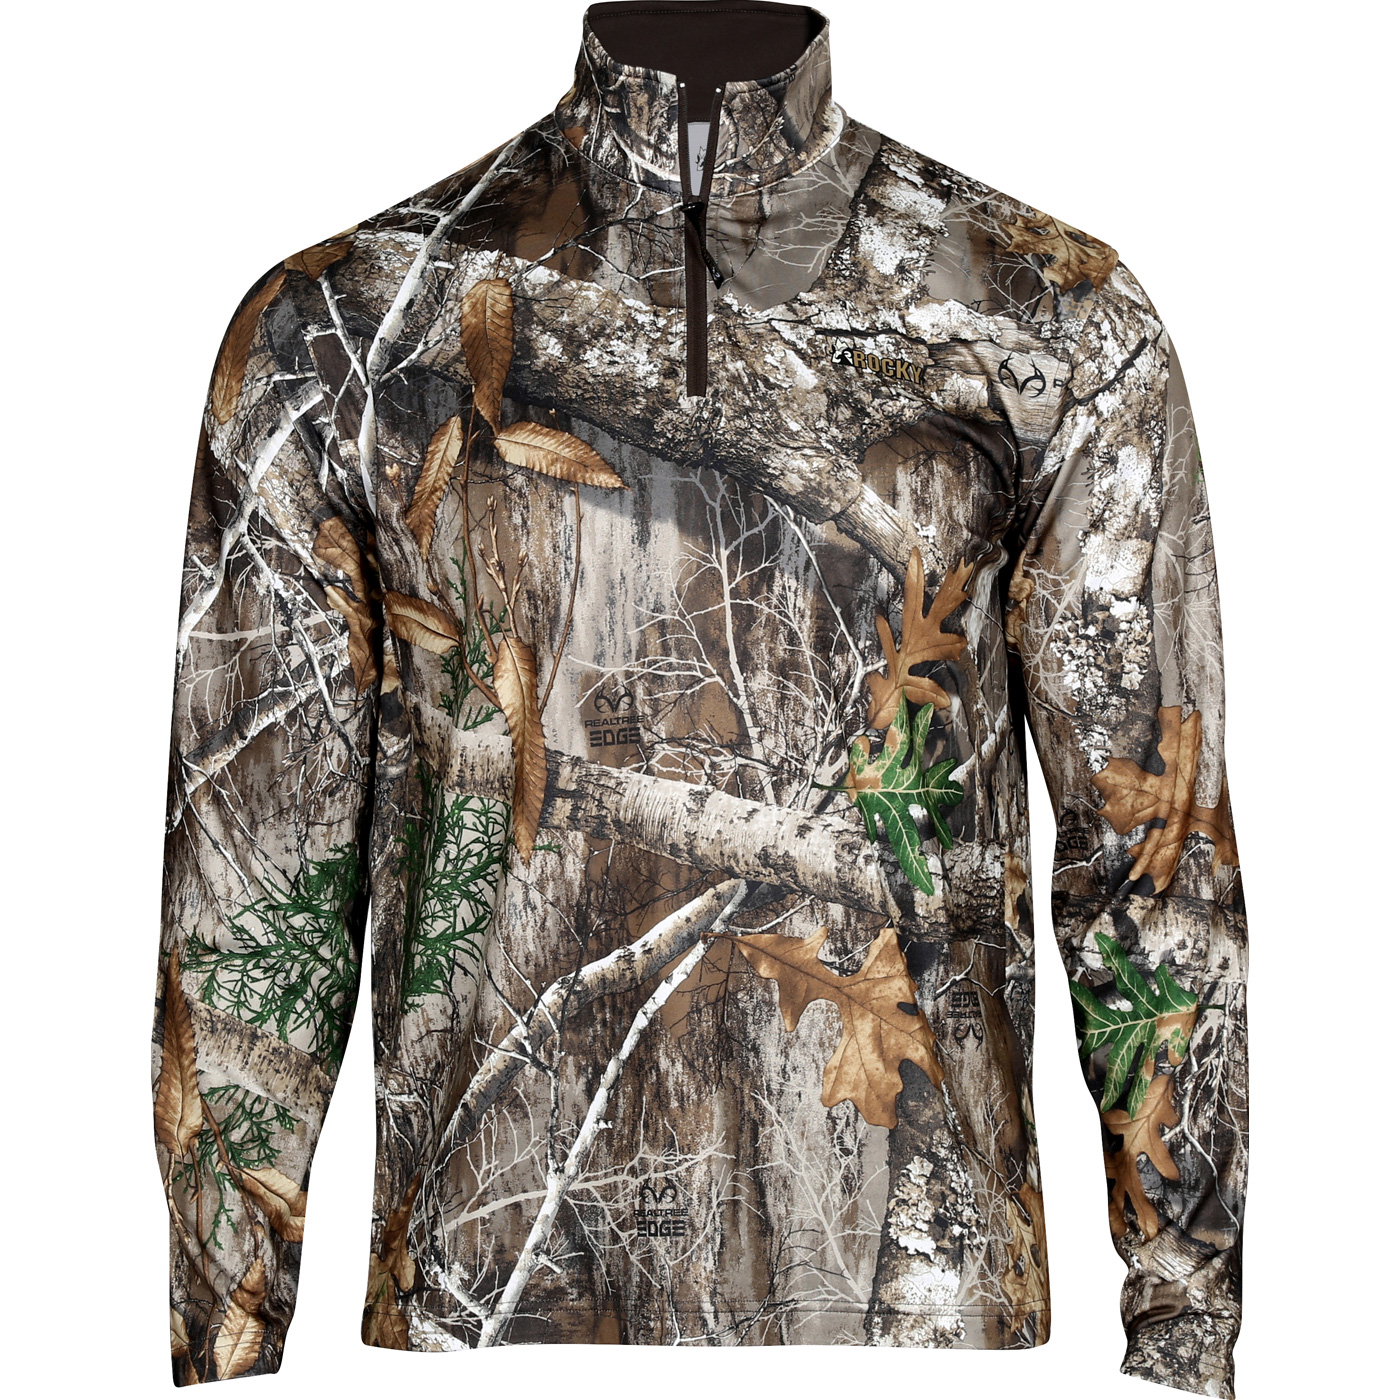 ac383bb810204 Rocky Camo Fleece Zip Shirt, Realtree Edge, large